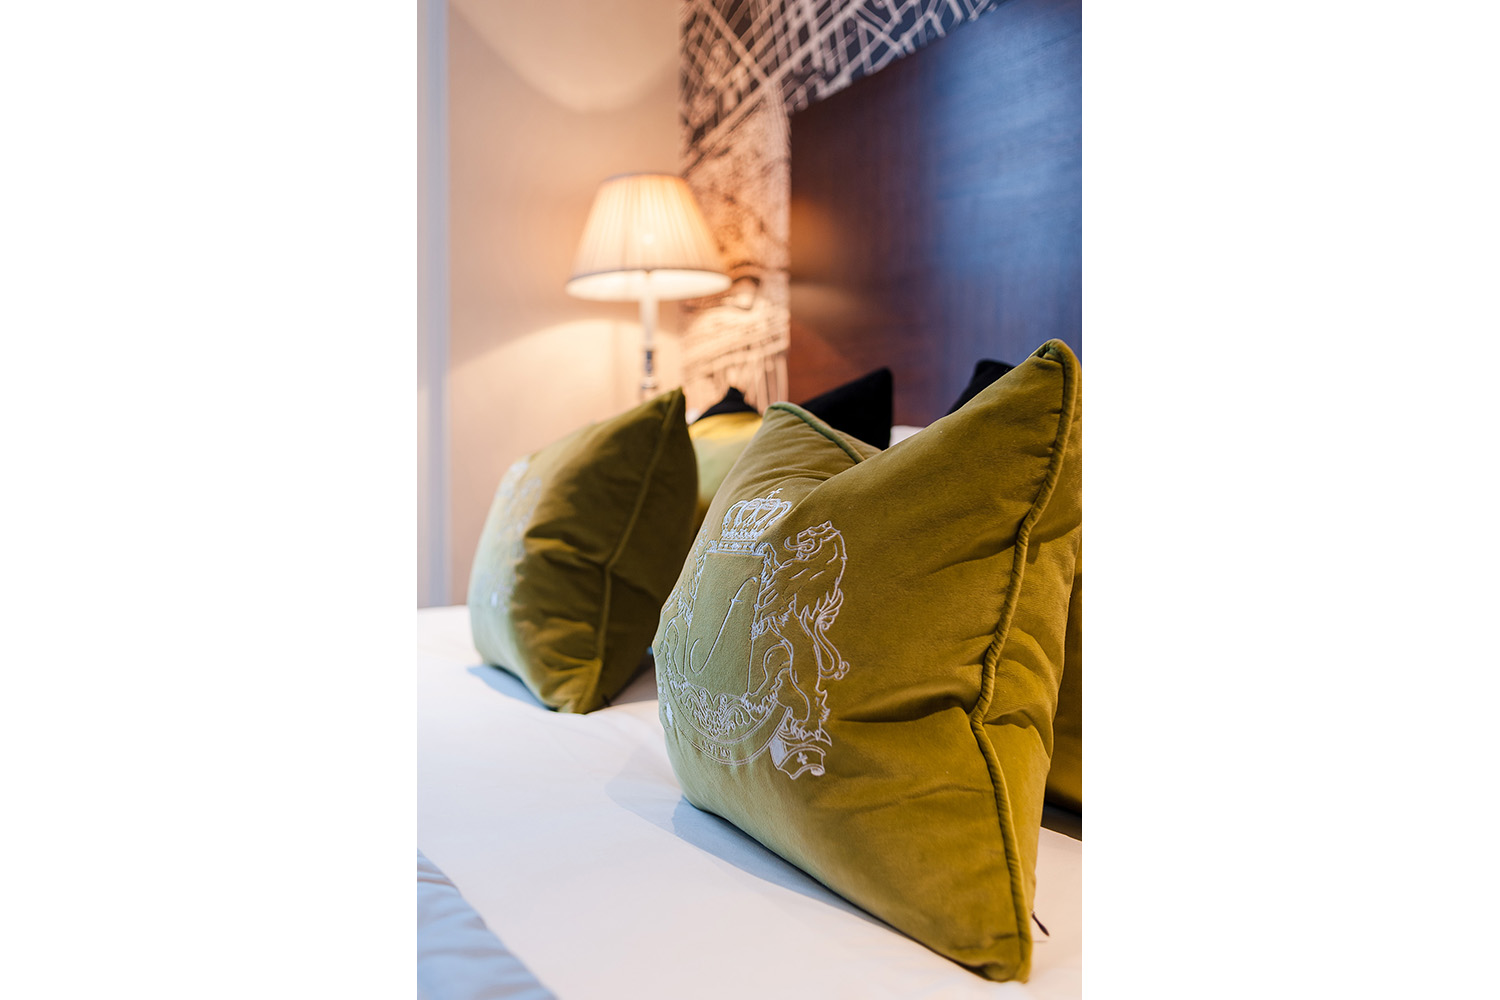 Design Box London - Interior Design - Flemings Hotel W1 - Bedroom Pillow